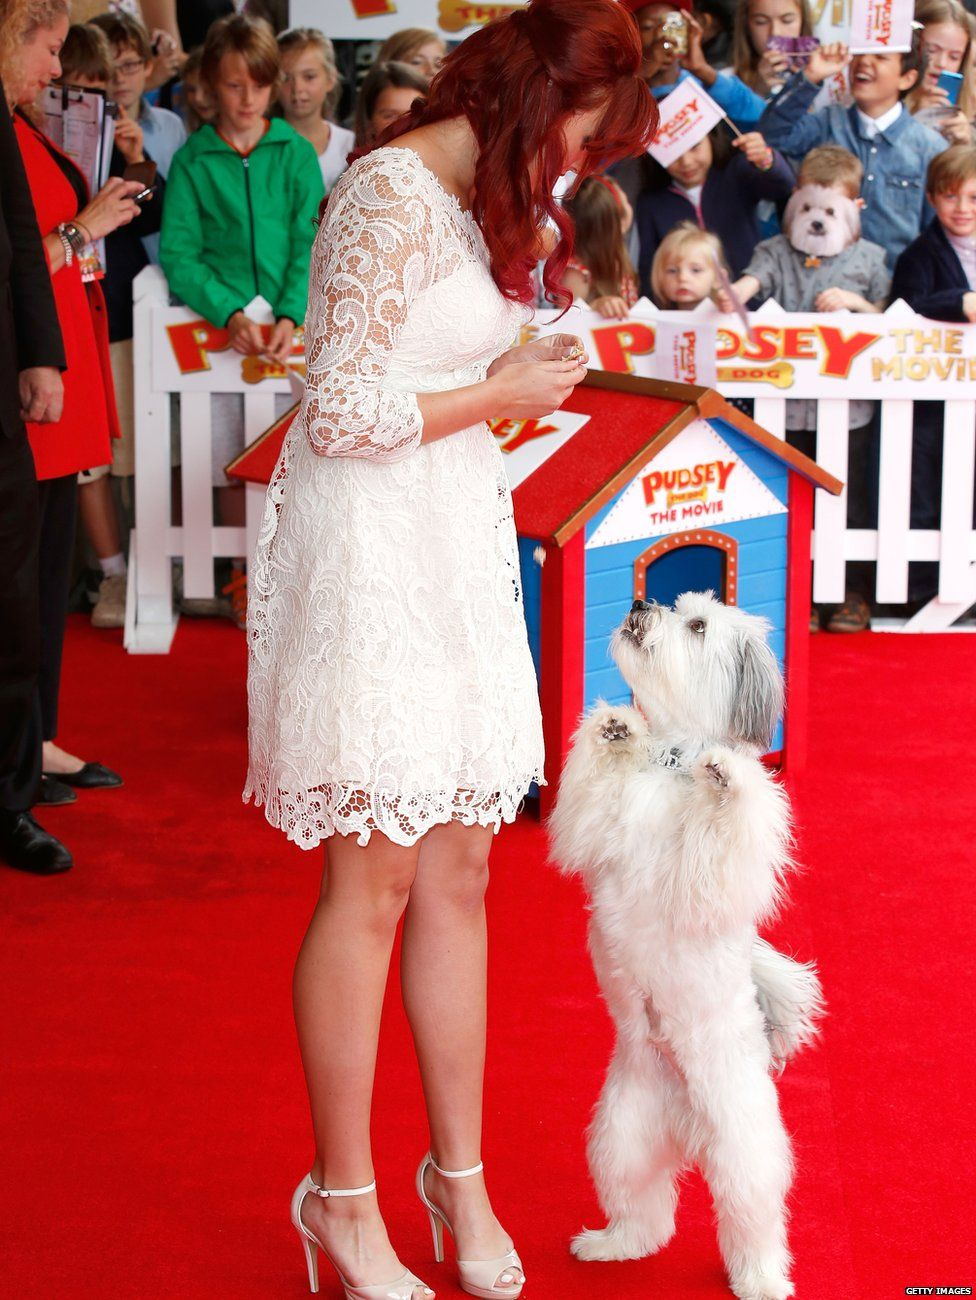 Pudsey standing on his back legs at the premier of Pudsey the dog: The Movie